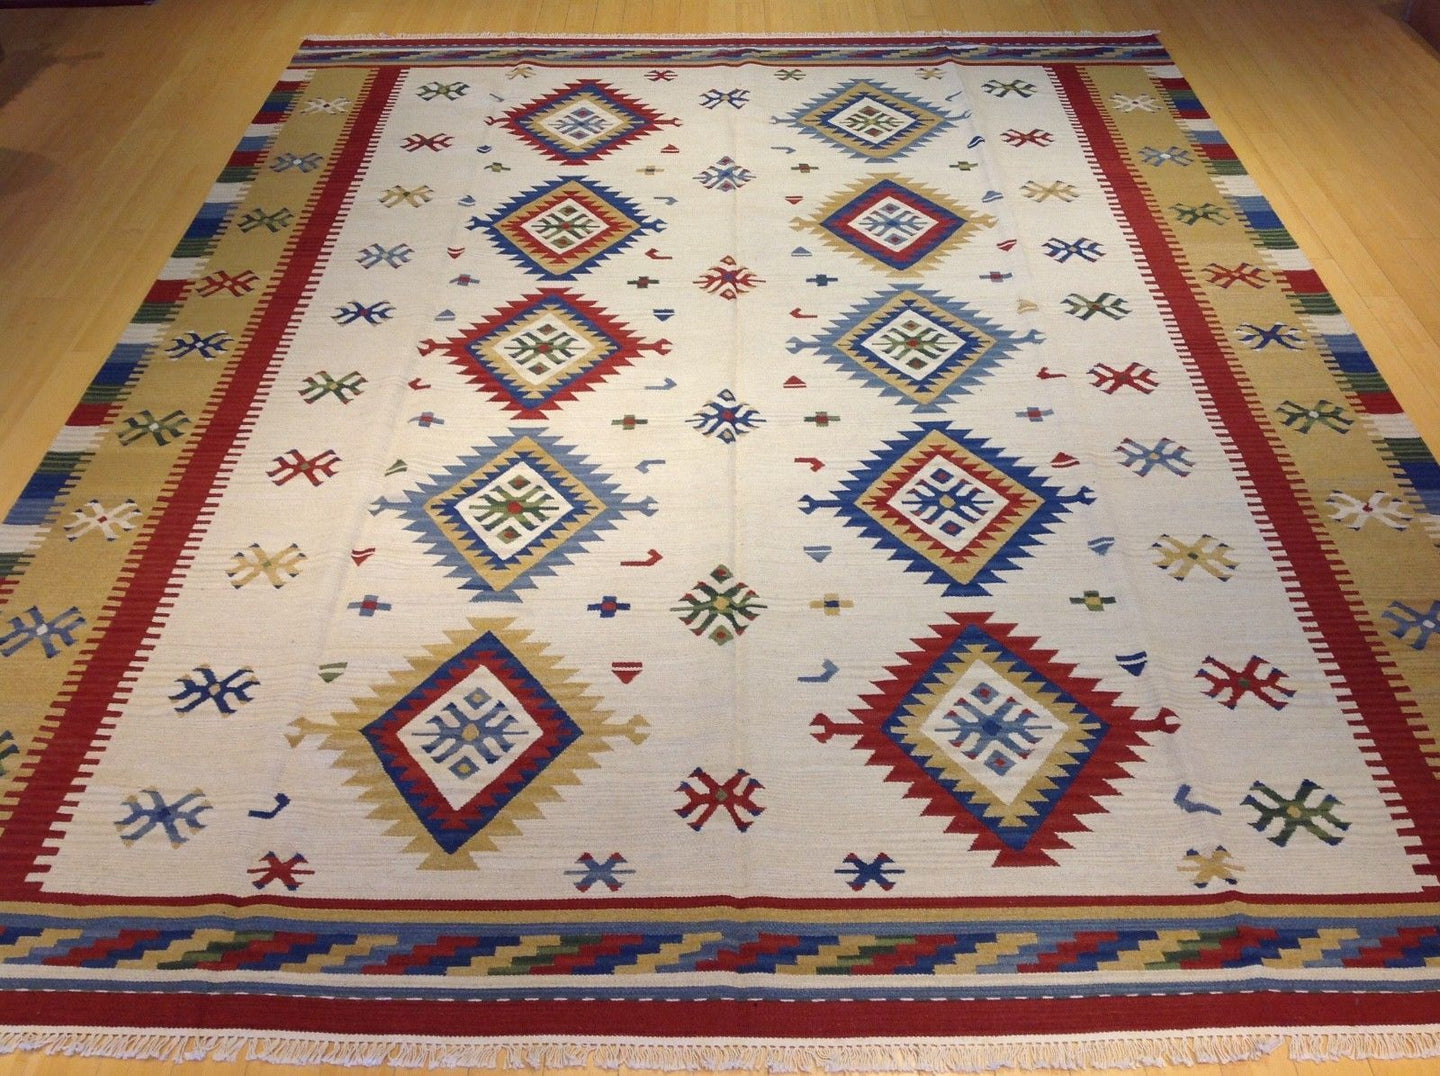 Stunning Handwoven Pretty Flatweave Reversible Geometric Design Kilim Dhurrie Amazing Unique Rug